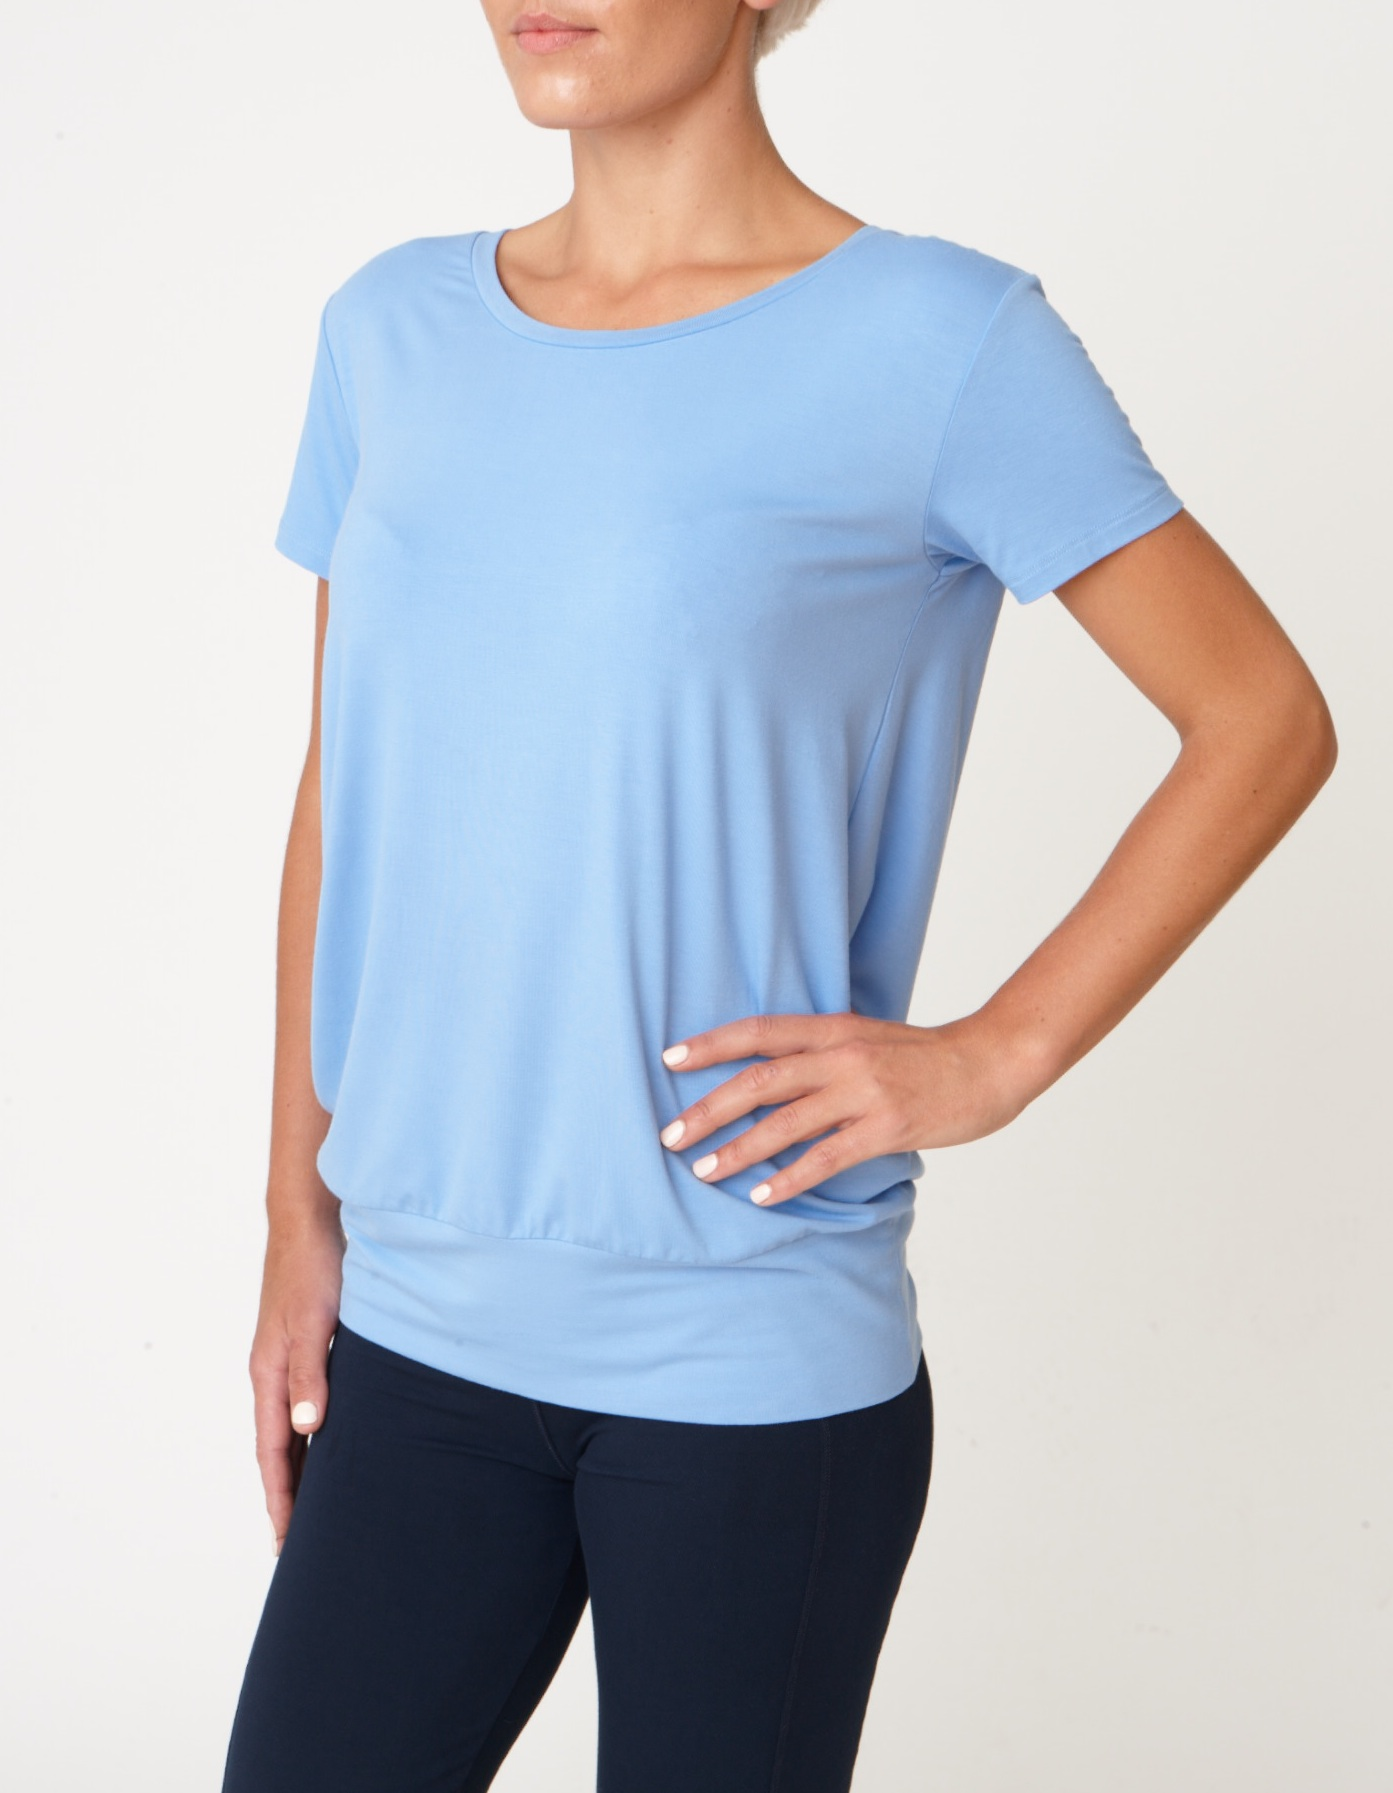 Asquith Smooth You Tee Sky Blue Yoga Vest top